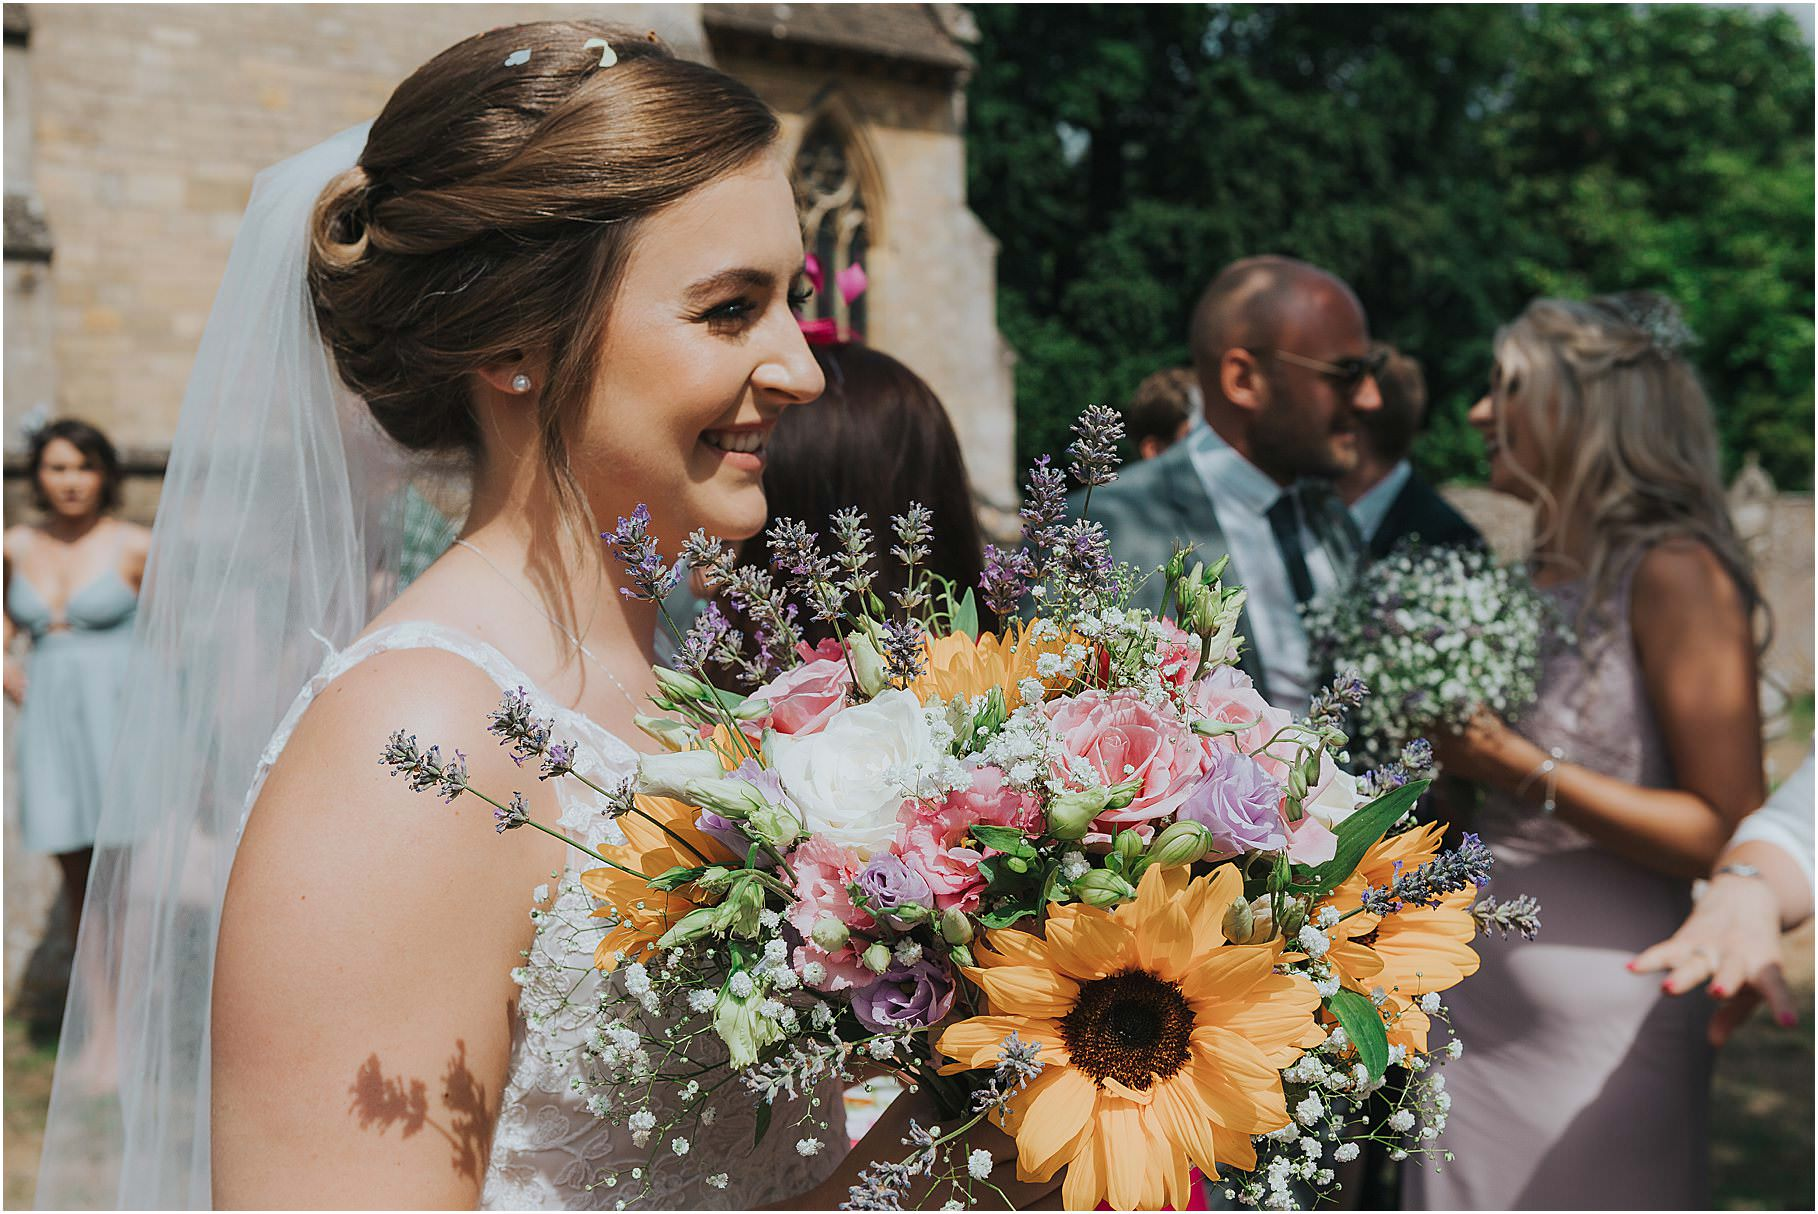 Rutland Weddings Exton Hall Exton Oakham Rutland Water Photographer 1060 - Mr and Mrs Barker // RUTLAND WEDDING